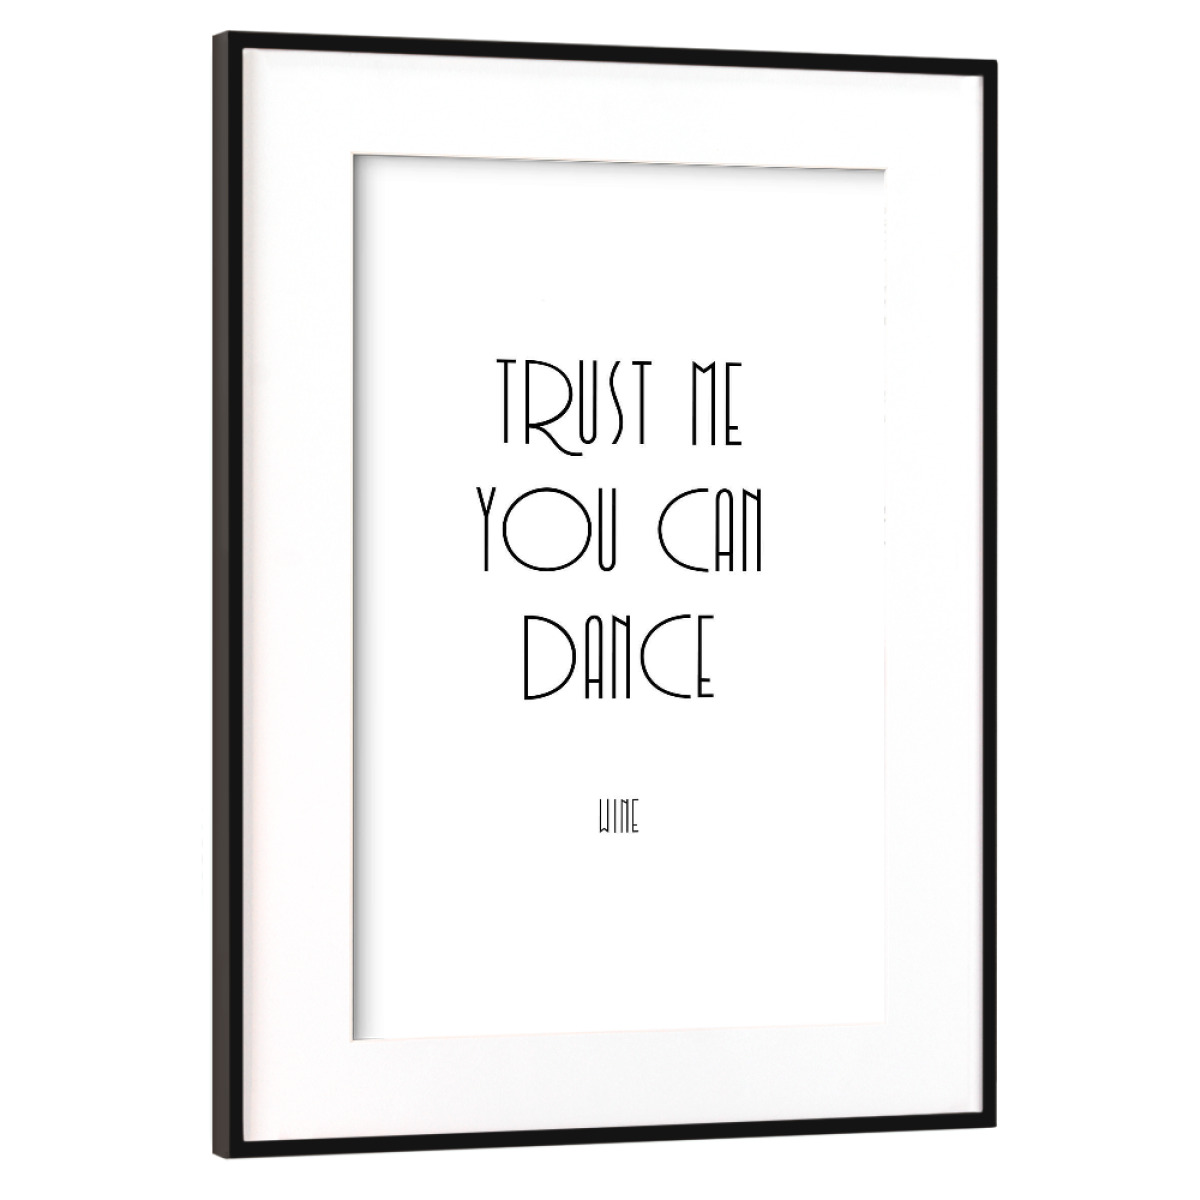 Purchase the Trust me you can dance zwei as a Frame at artboxONE